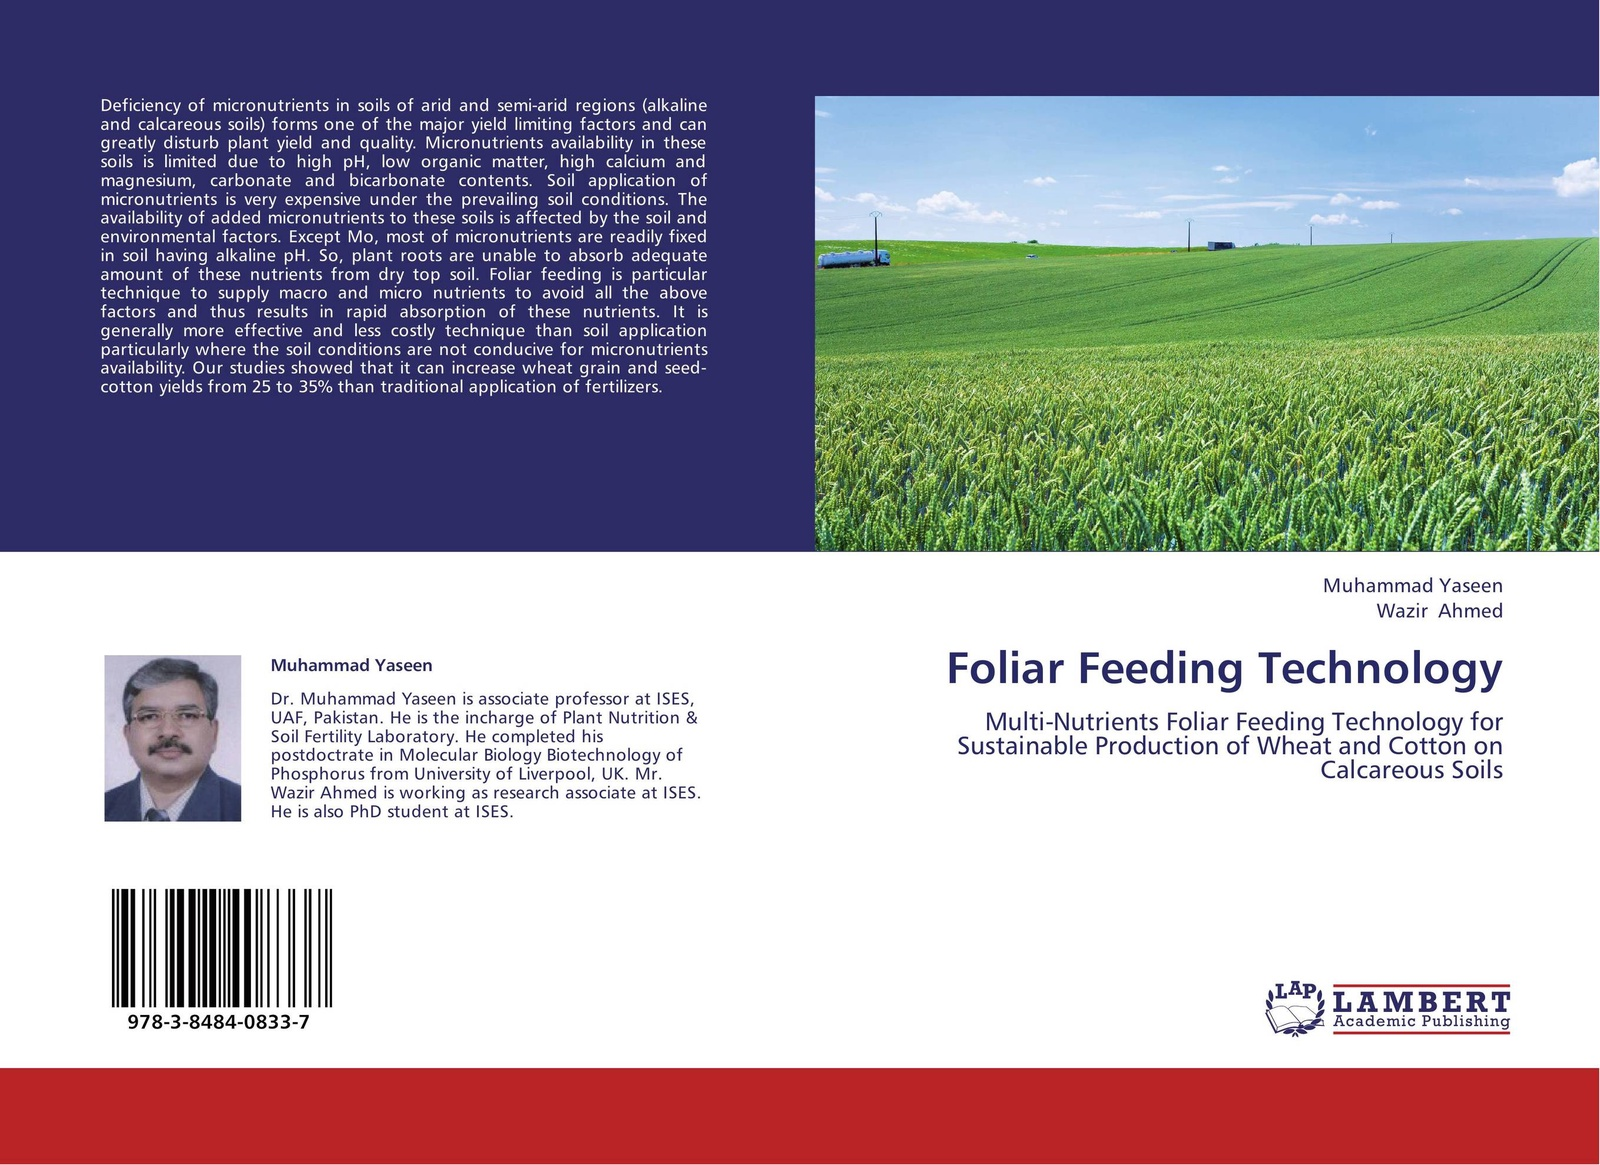 Фото - Muhammad Yaseen and Wazir Ahmed Foliar Feeding Technology frank d 1864 1963 gardner soils and soil cultivation